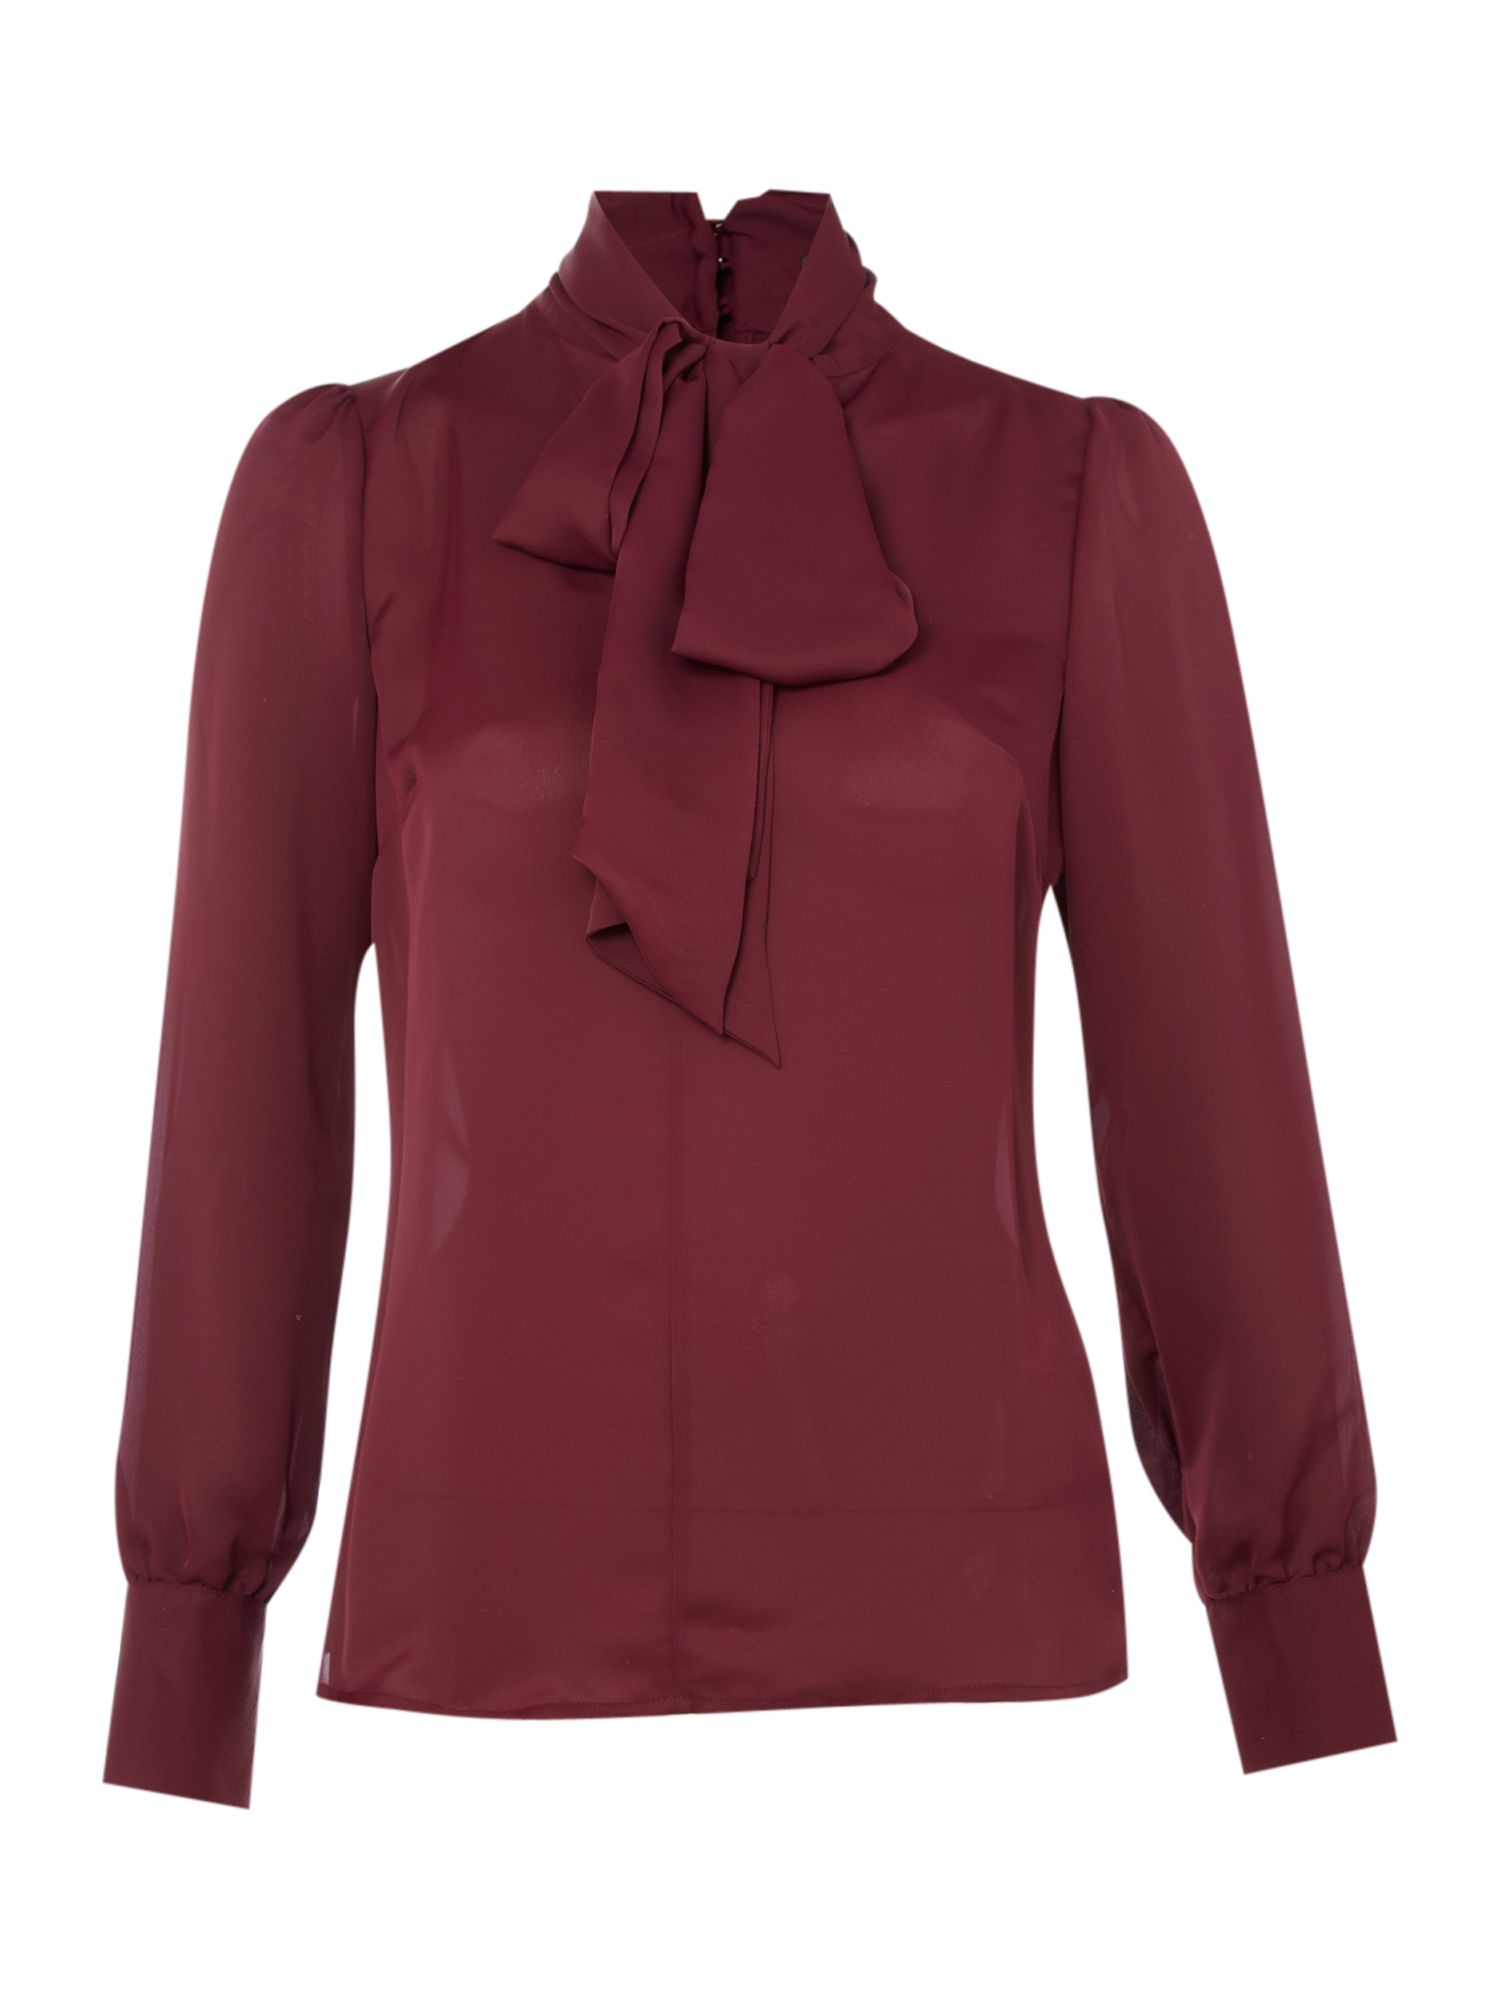 Womens Pied a Terre Pussy bow blouse, Grape